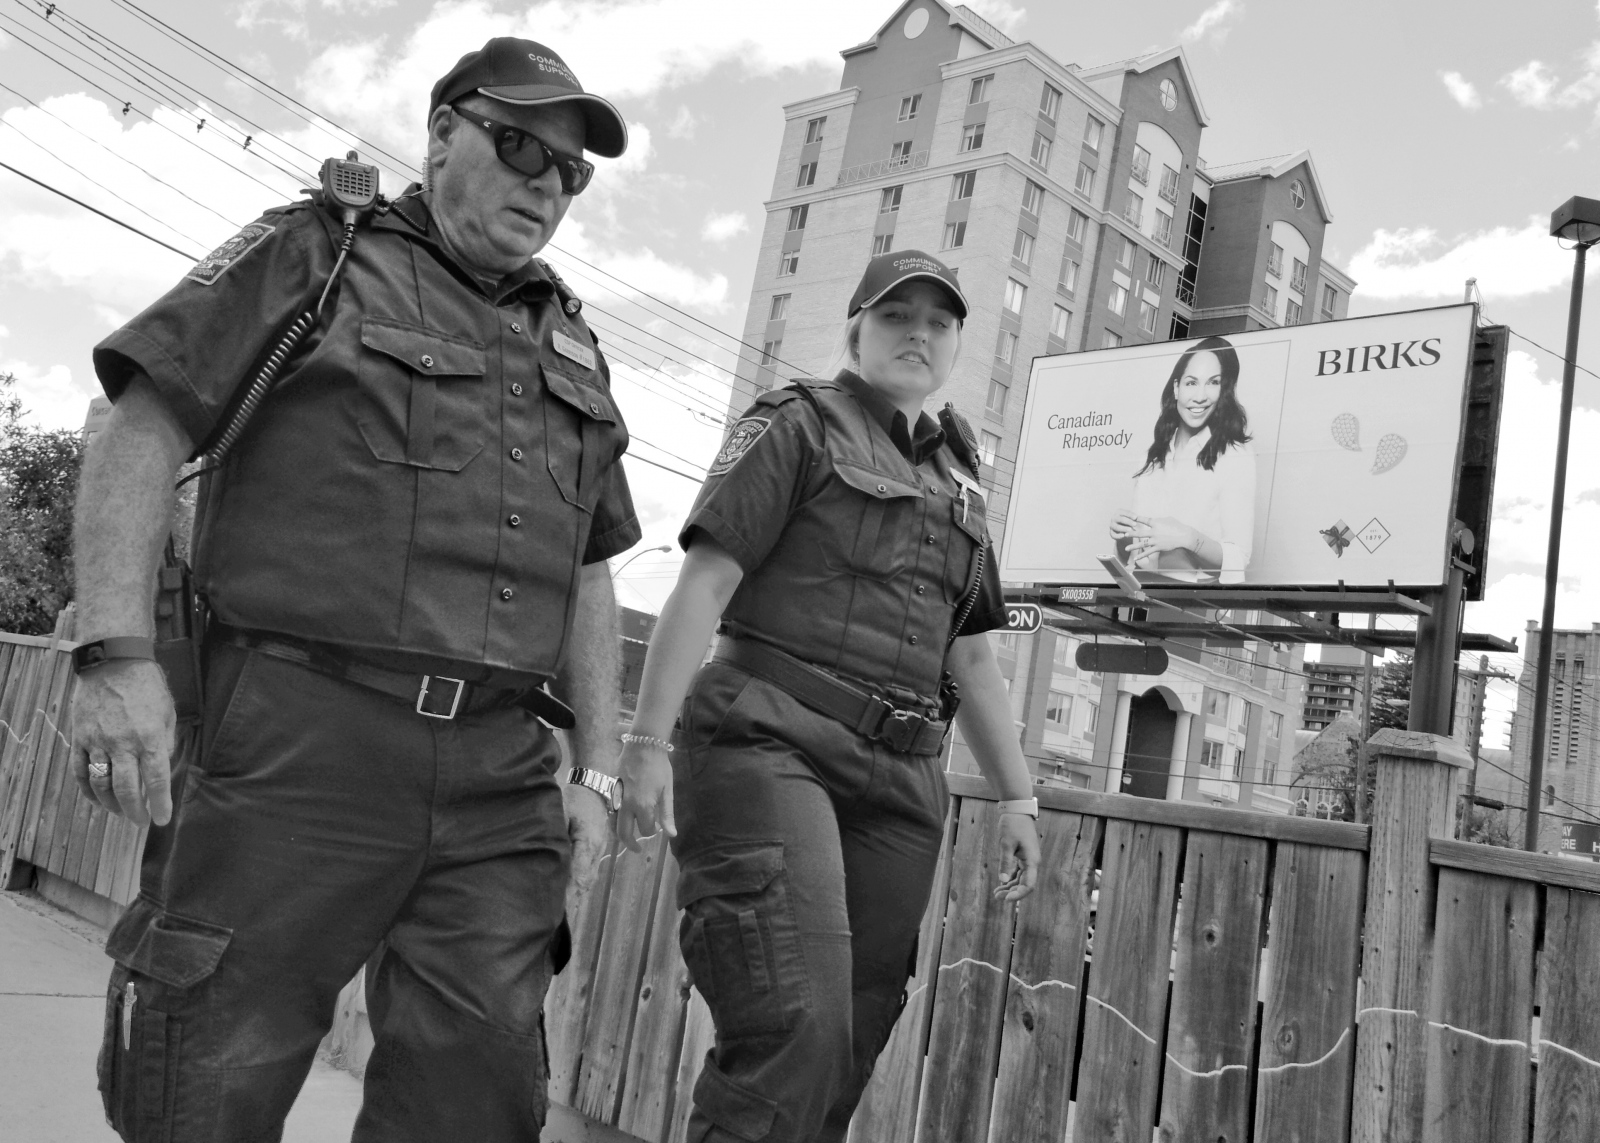 Photography image - Patrol, 2nd Ave.